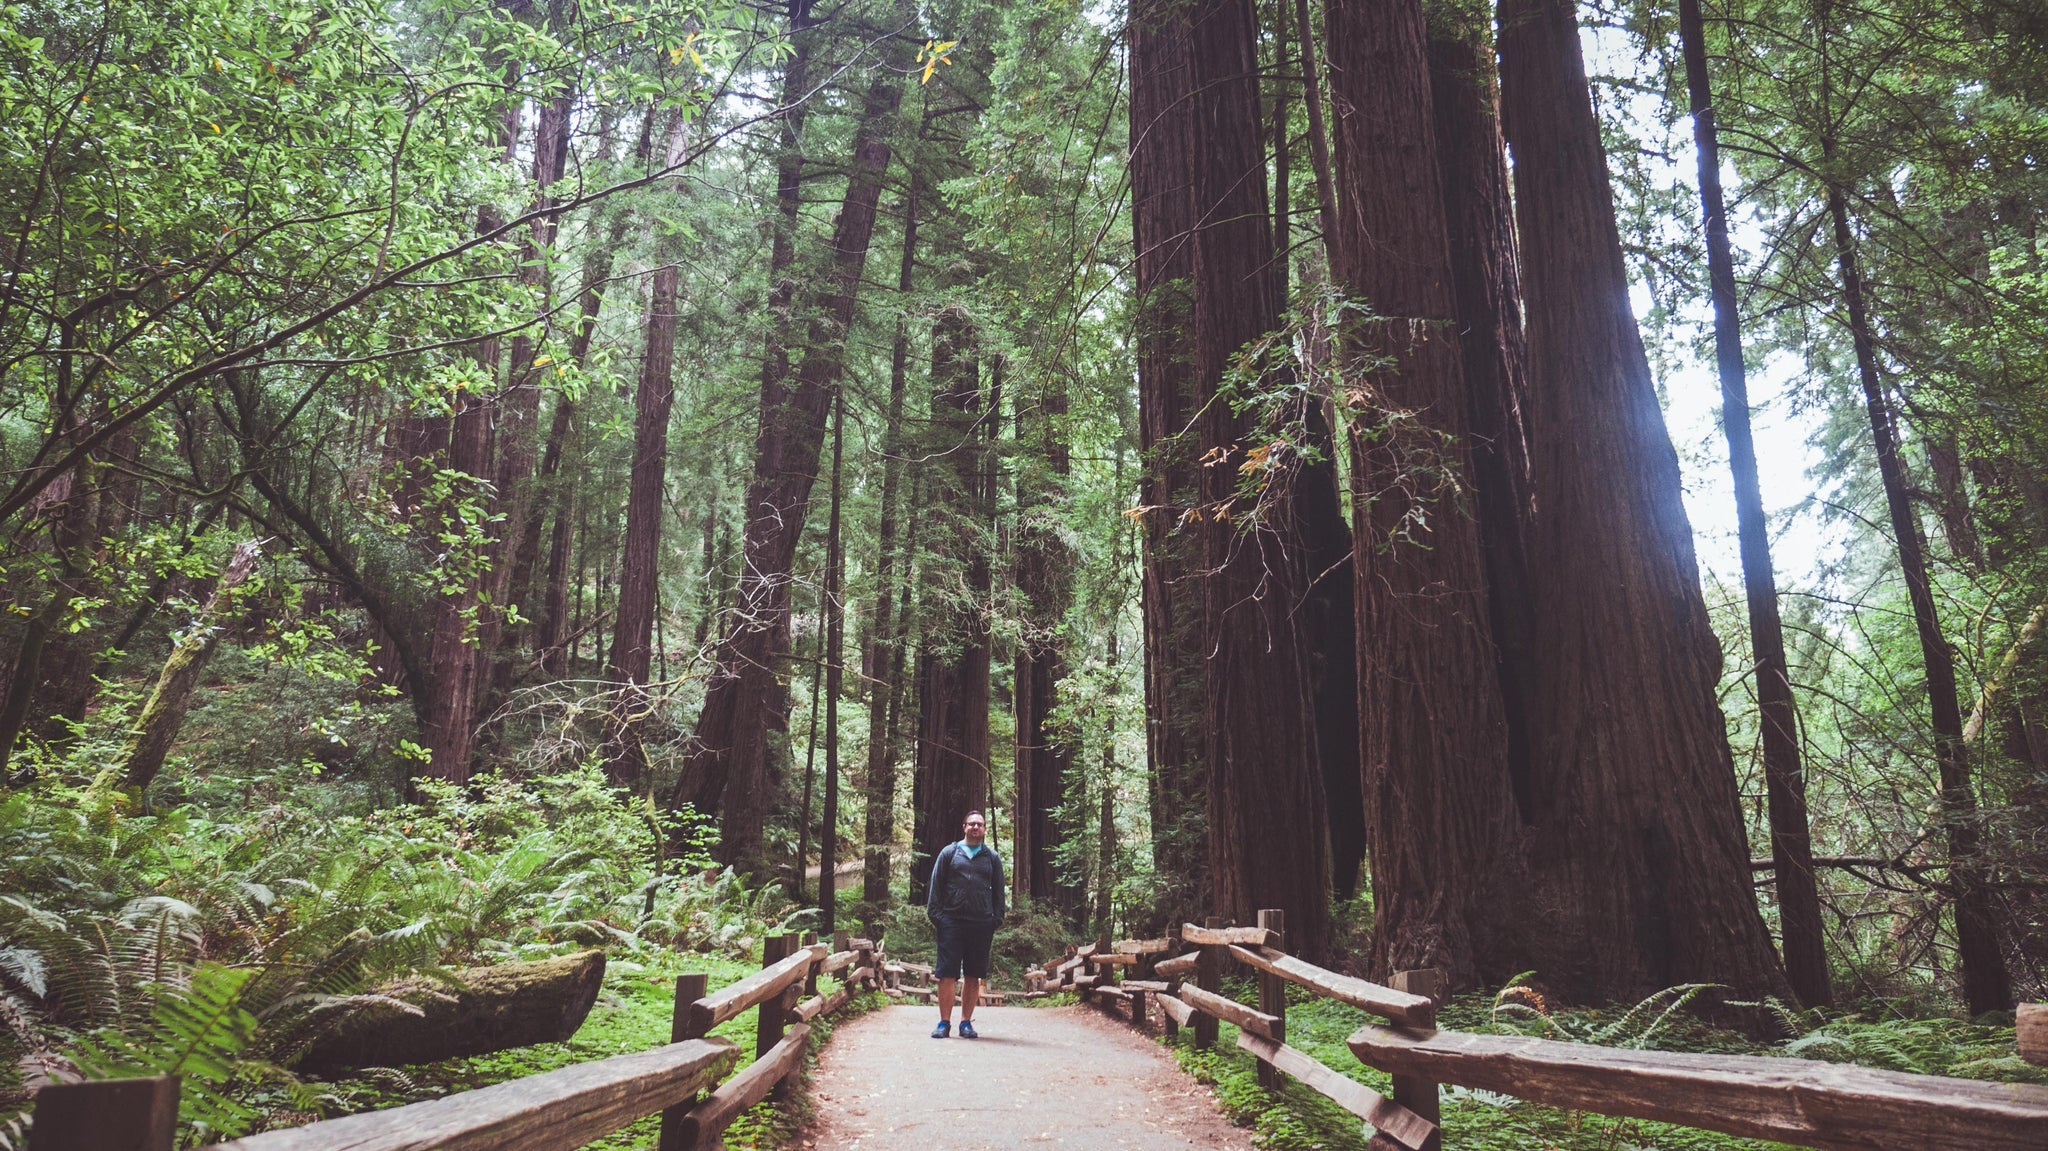 muirwoods-california-sanfrancisc-redwoods-thennowalways